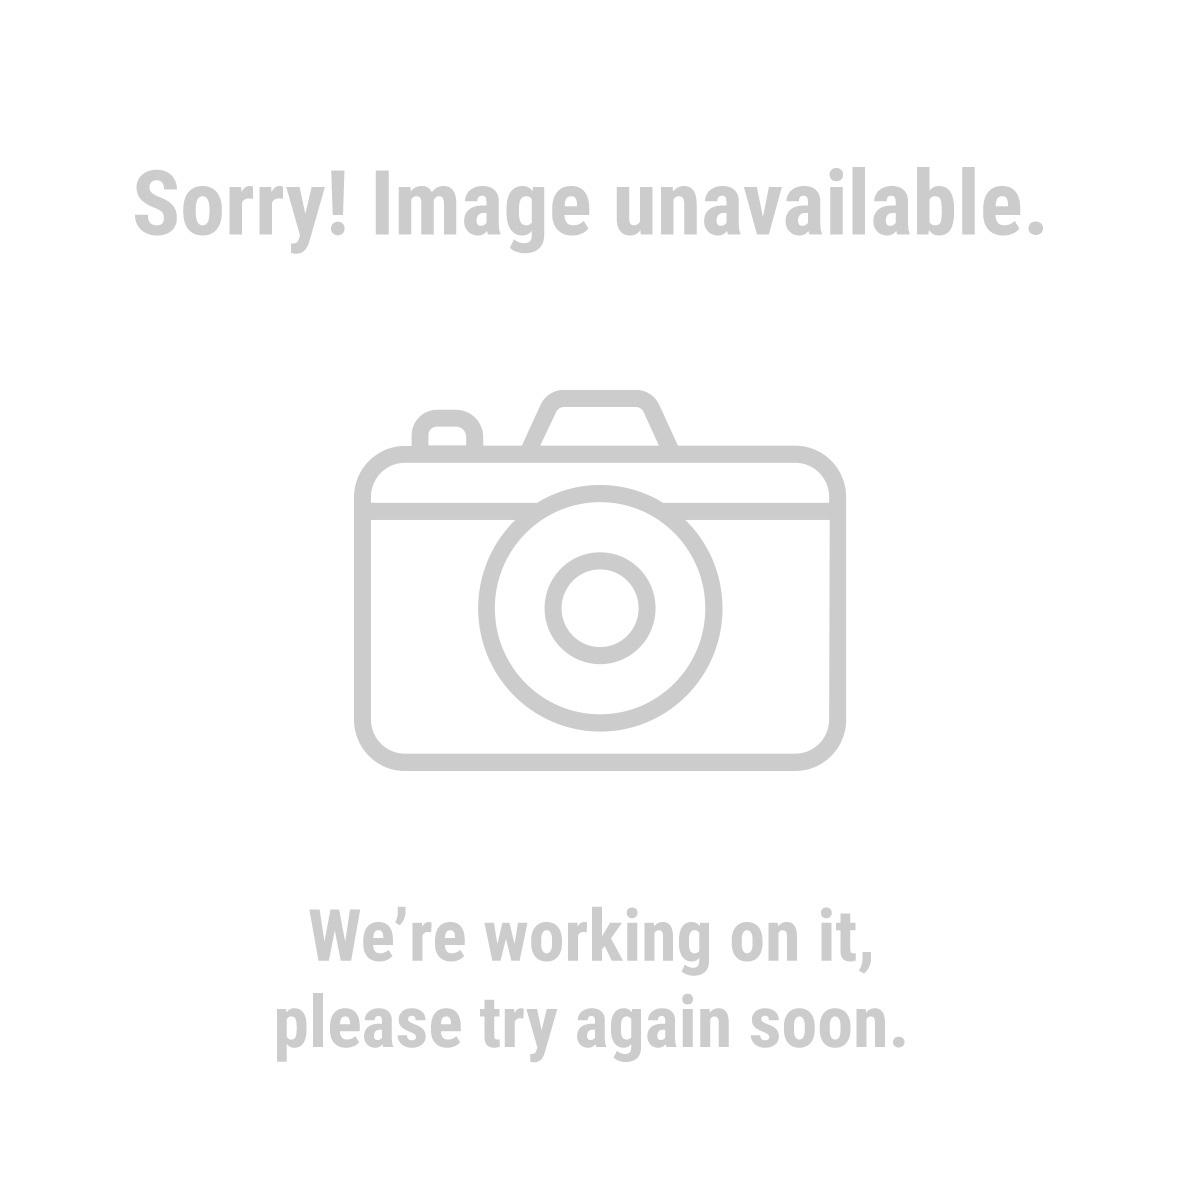 Warrior 69979 5 Piece Palm Sander Replacement Pads